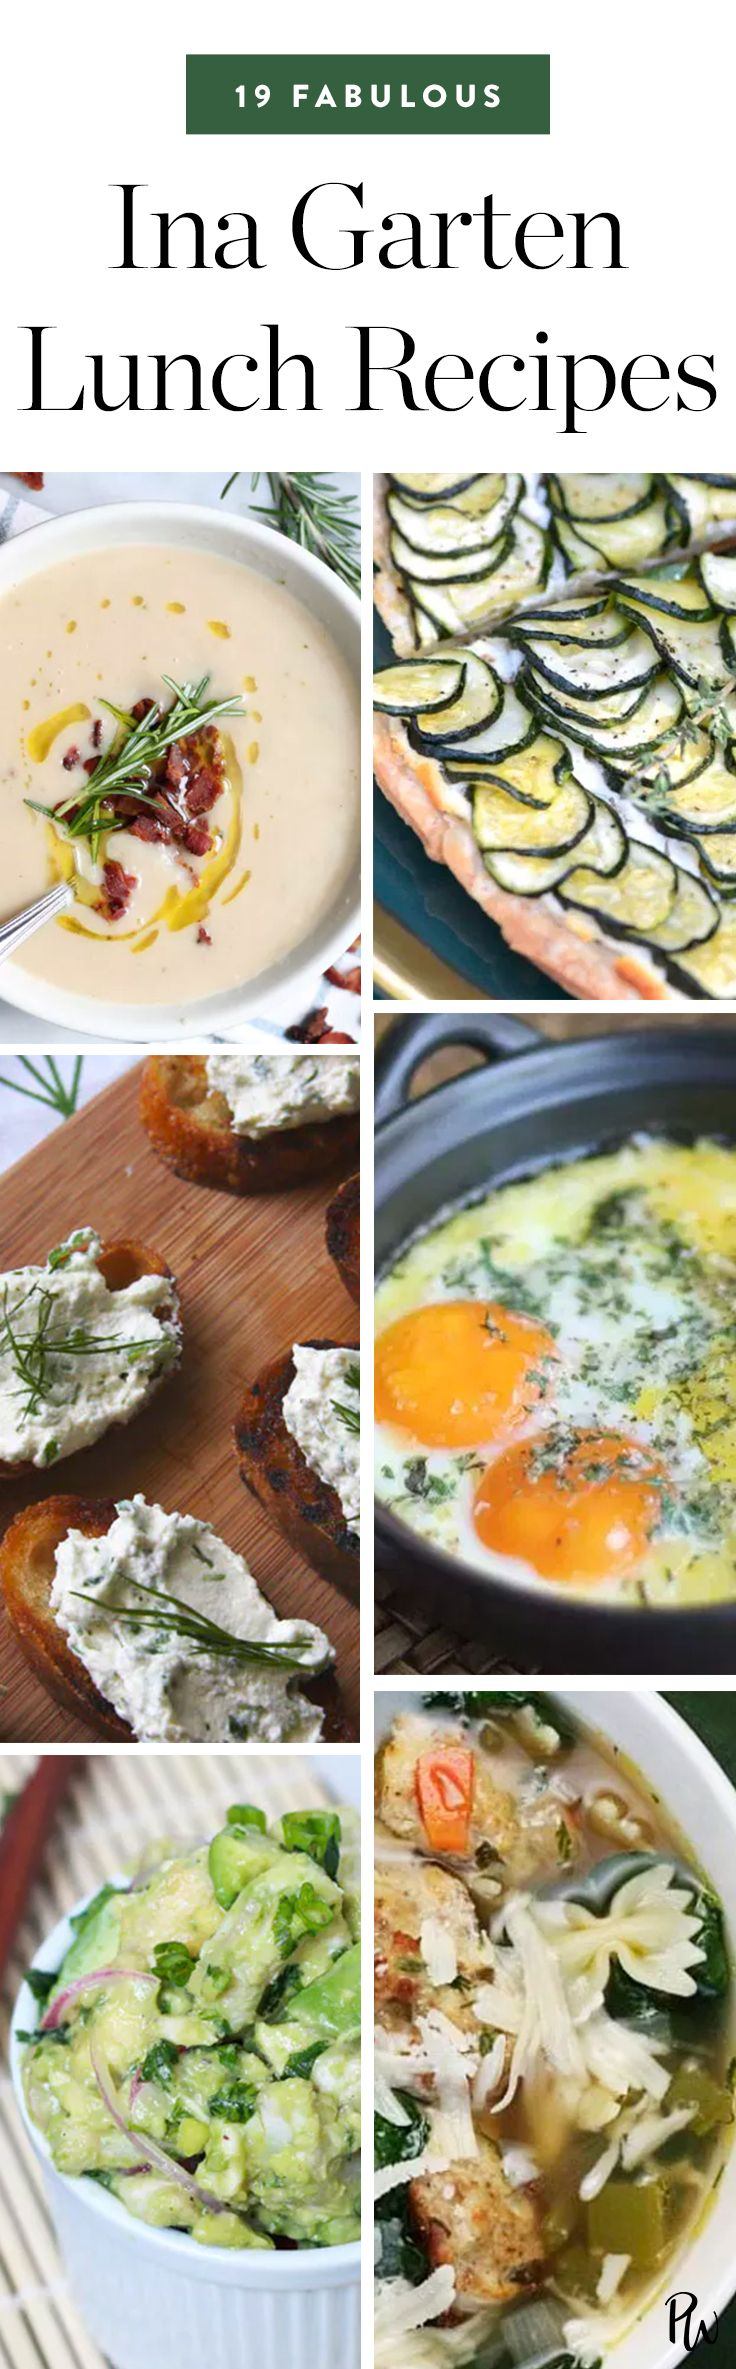 19 Lunch Recipes from Ina Garten That Are Totally Fabulous via @PureWow via @PureWow